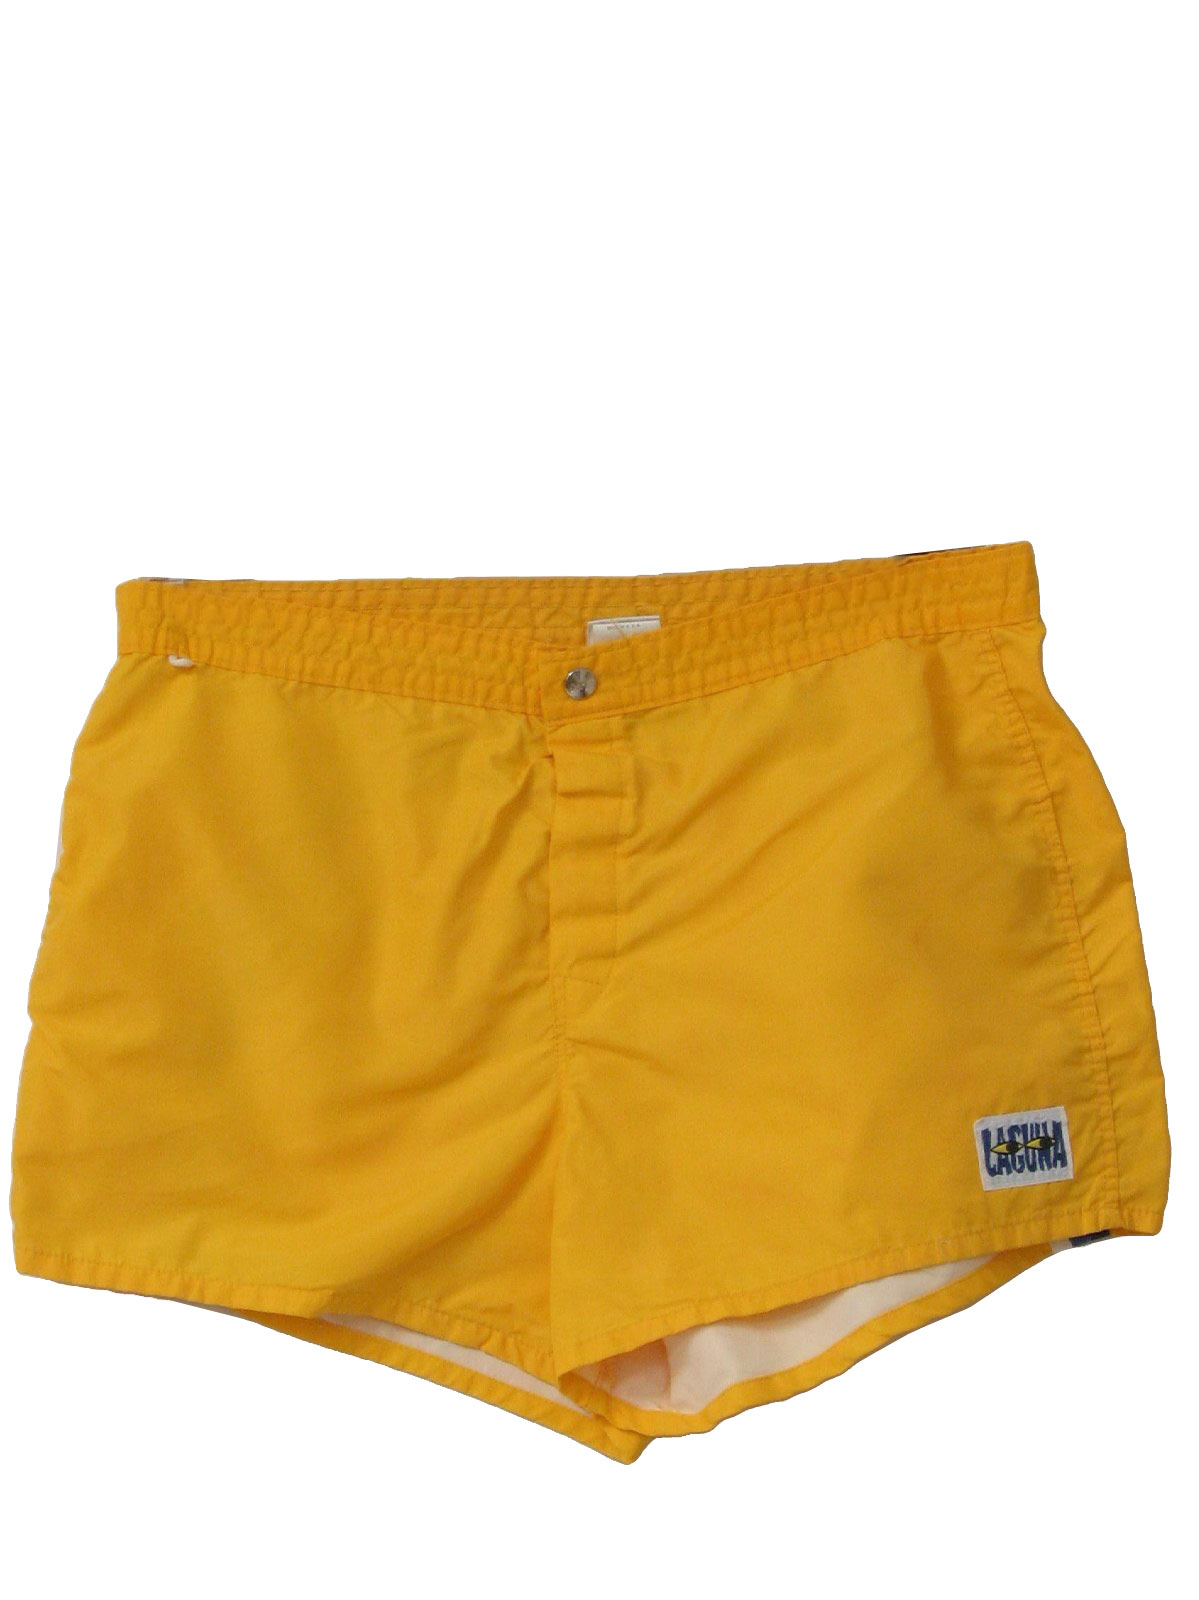 Mens Yellow Nylon Totally 80s Board Shorts With Velcrosnap Closure